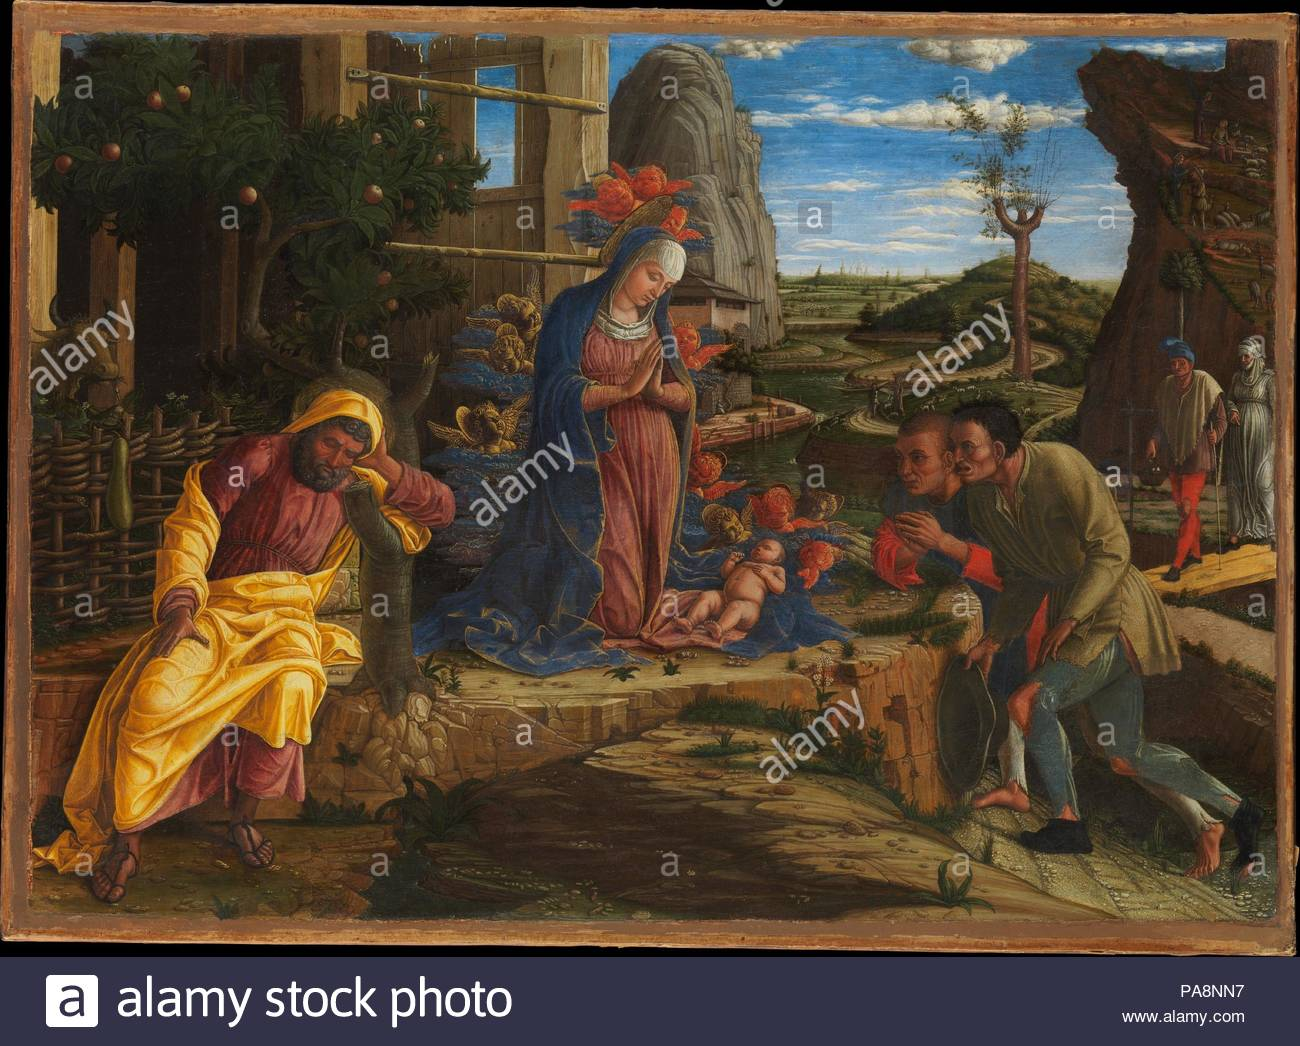 The Adoration of the Shepherds. Artist: Andrea Mantegna (Italian, Isola di Carturo 1430/31-1506 Mantua). Dimensions: Overall 15 3/4 x 21 7/8 in. (40 x 55.6 cm); painted surface 14 7/8 x 21 in. (37.8 x 53.3 cm). Date: shortly after 1450.  Painted when the artist was probably in his early twenties, the picture is notable for its exquisite detail. It may have been commissioned by Borso d'Este, the duke of Ferrara, and its style seems to be a response to the vogue there for Netherlandish painting. Ahough transferred from wood to canvas, the painting is in excellent condition. Museum: Metropolitan  - Stock Image